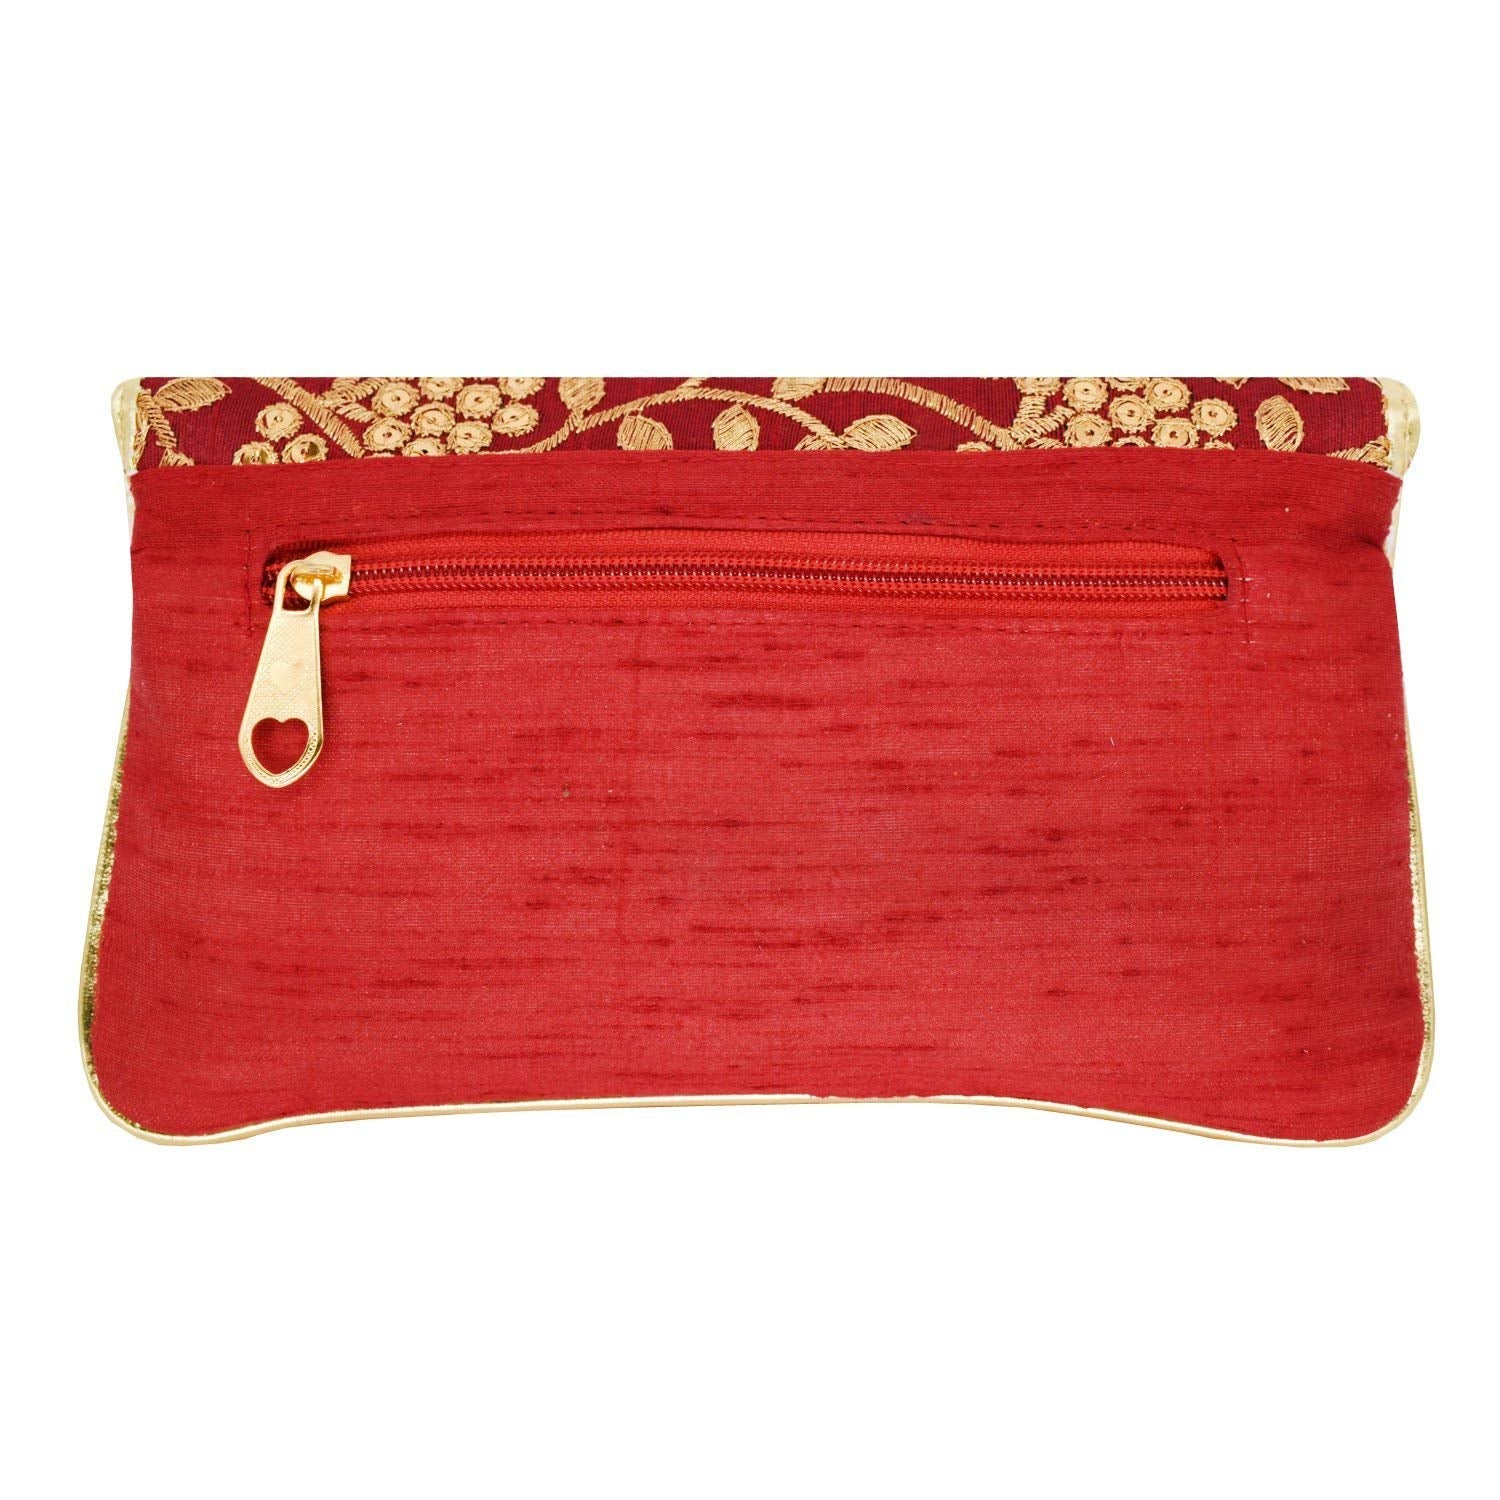 Ethnic Silk Clutch Embroidery Work (Maroon) - Bagaholics Gift